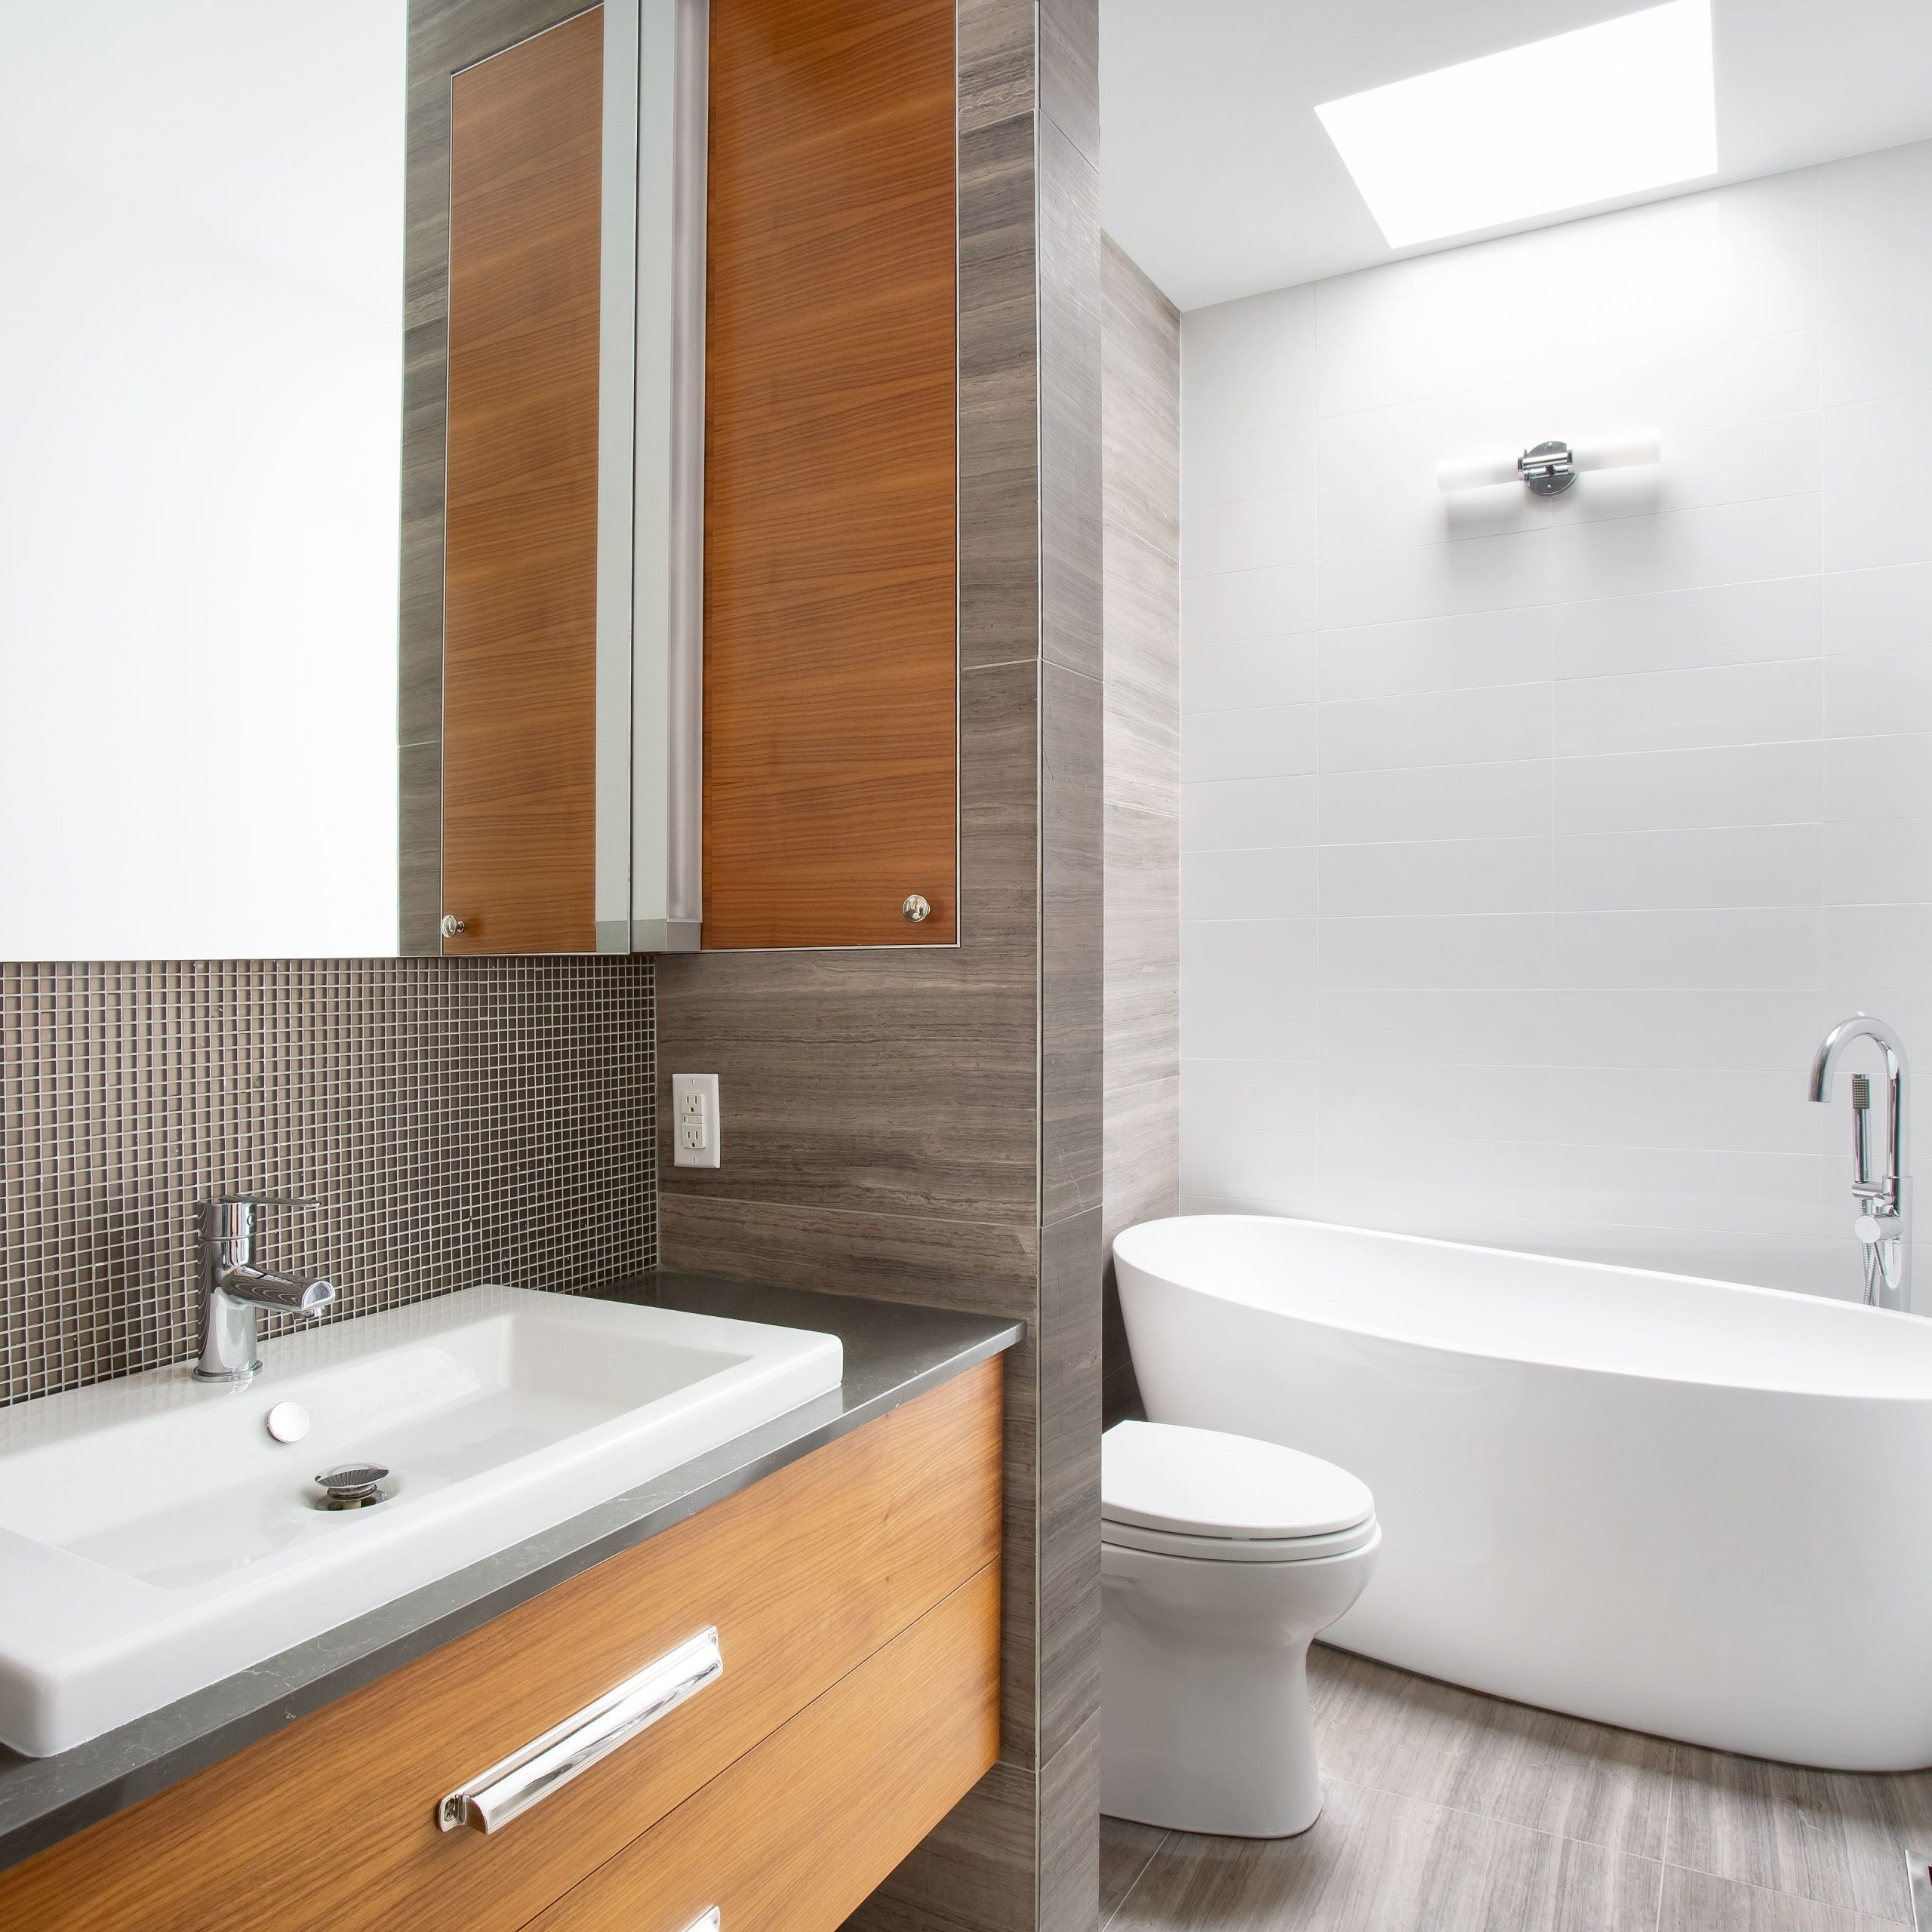 11 Amazing Before And After Bathroom Remodels 40+ 50S Bathroom Remodel Inspirations